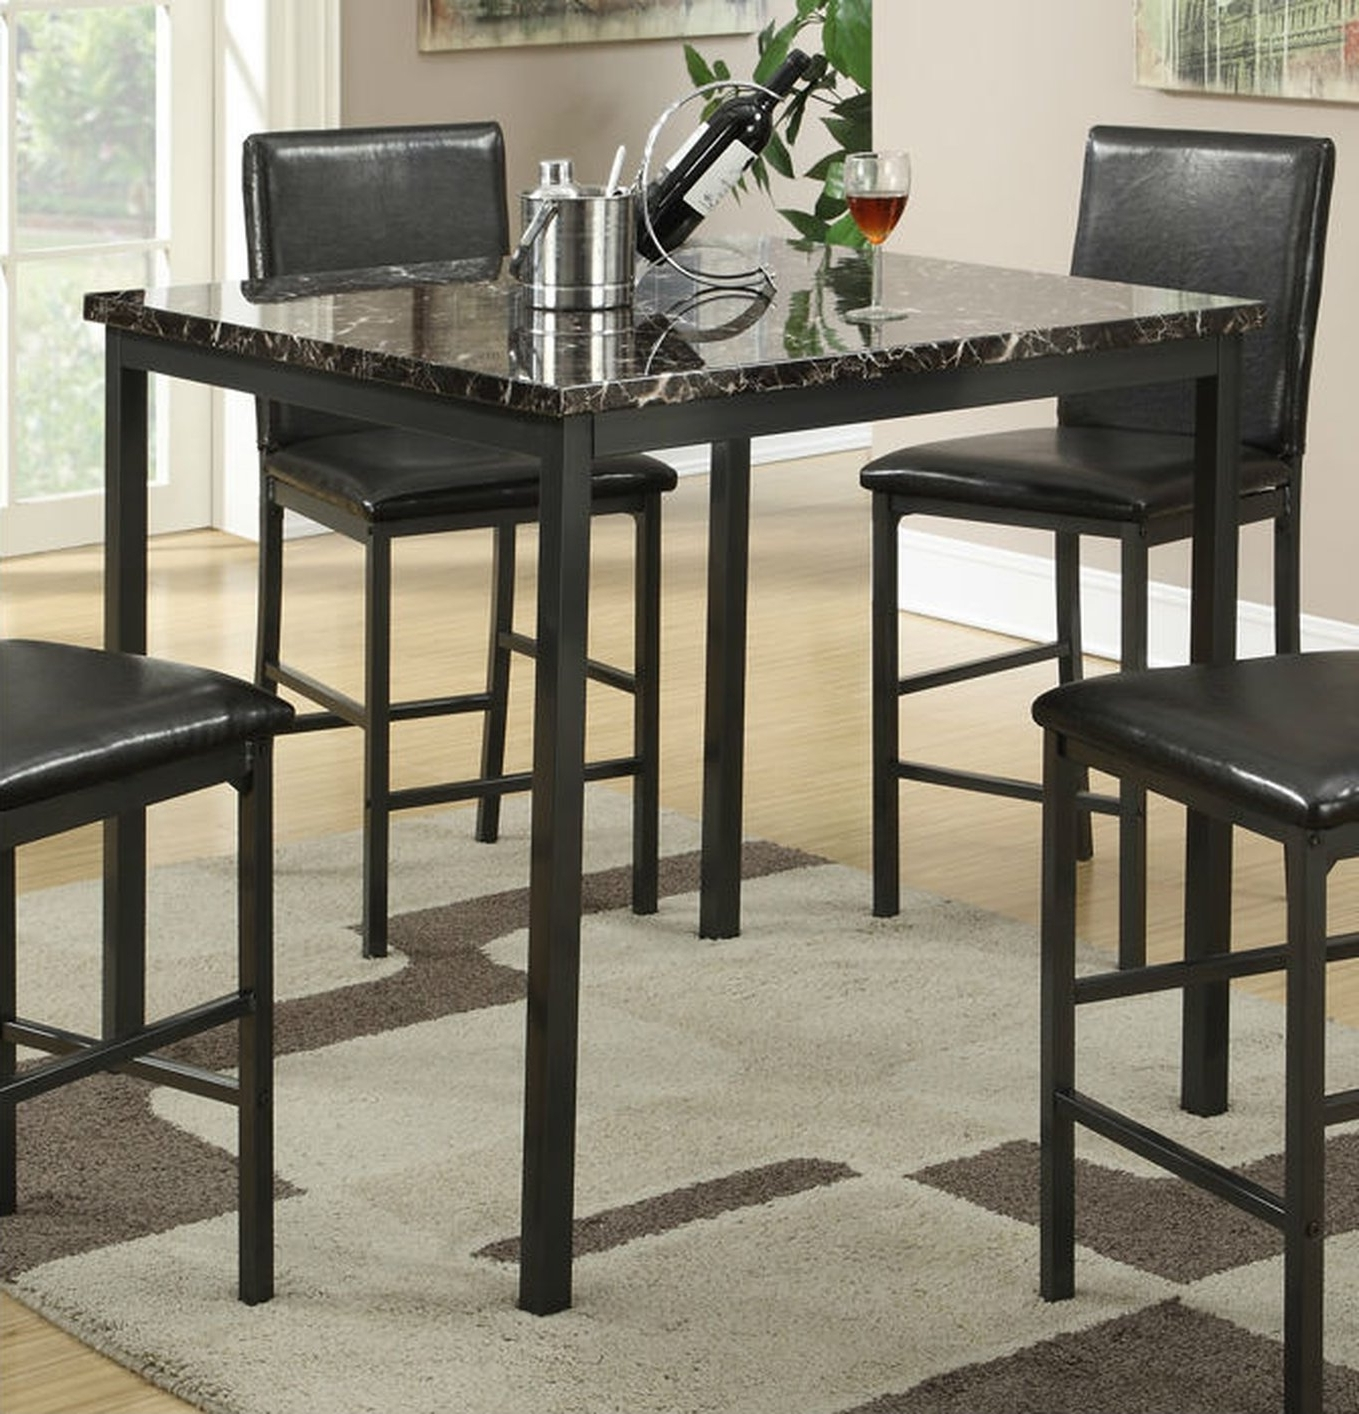 Palazzo Rectangle Dining Tables Regarding 2017 Black Metal Dining Table – Steal A Sofa Furniture Outlet Los Angeles Ca (View 19 of 25)